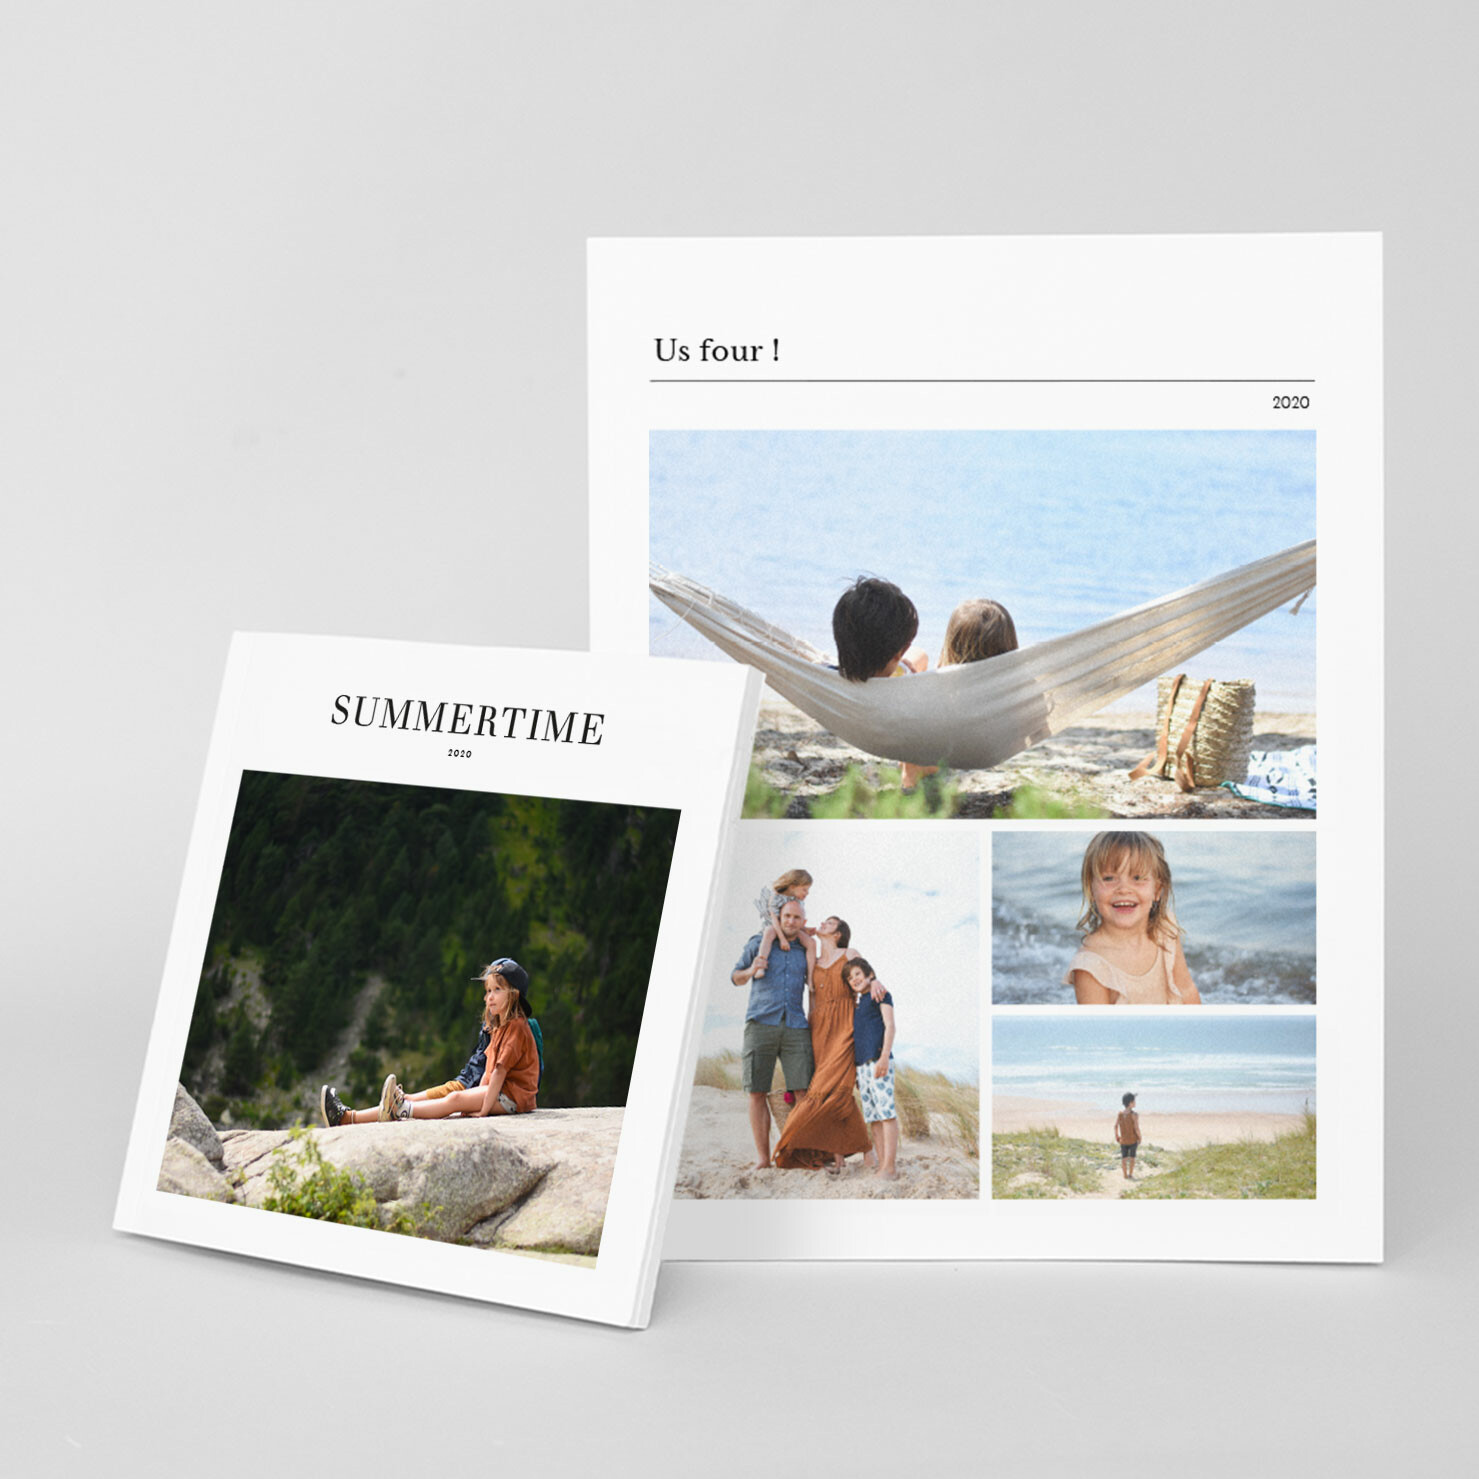 softcover traditional photo albums